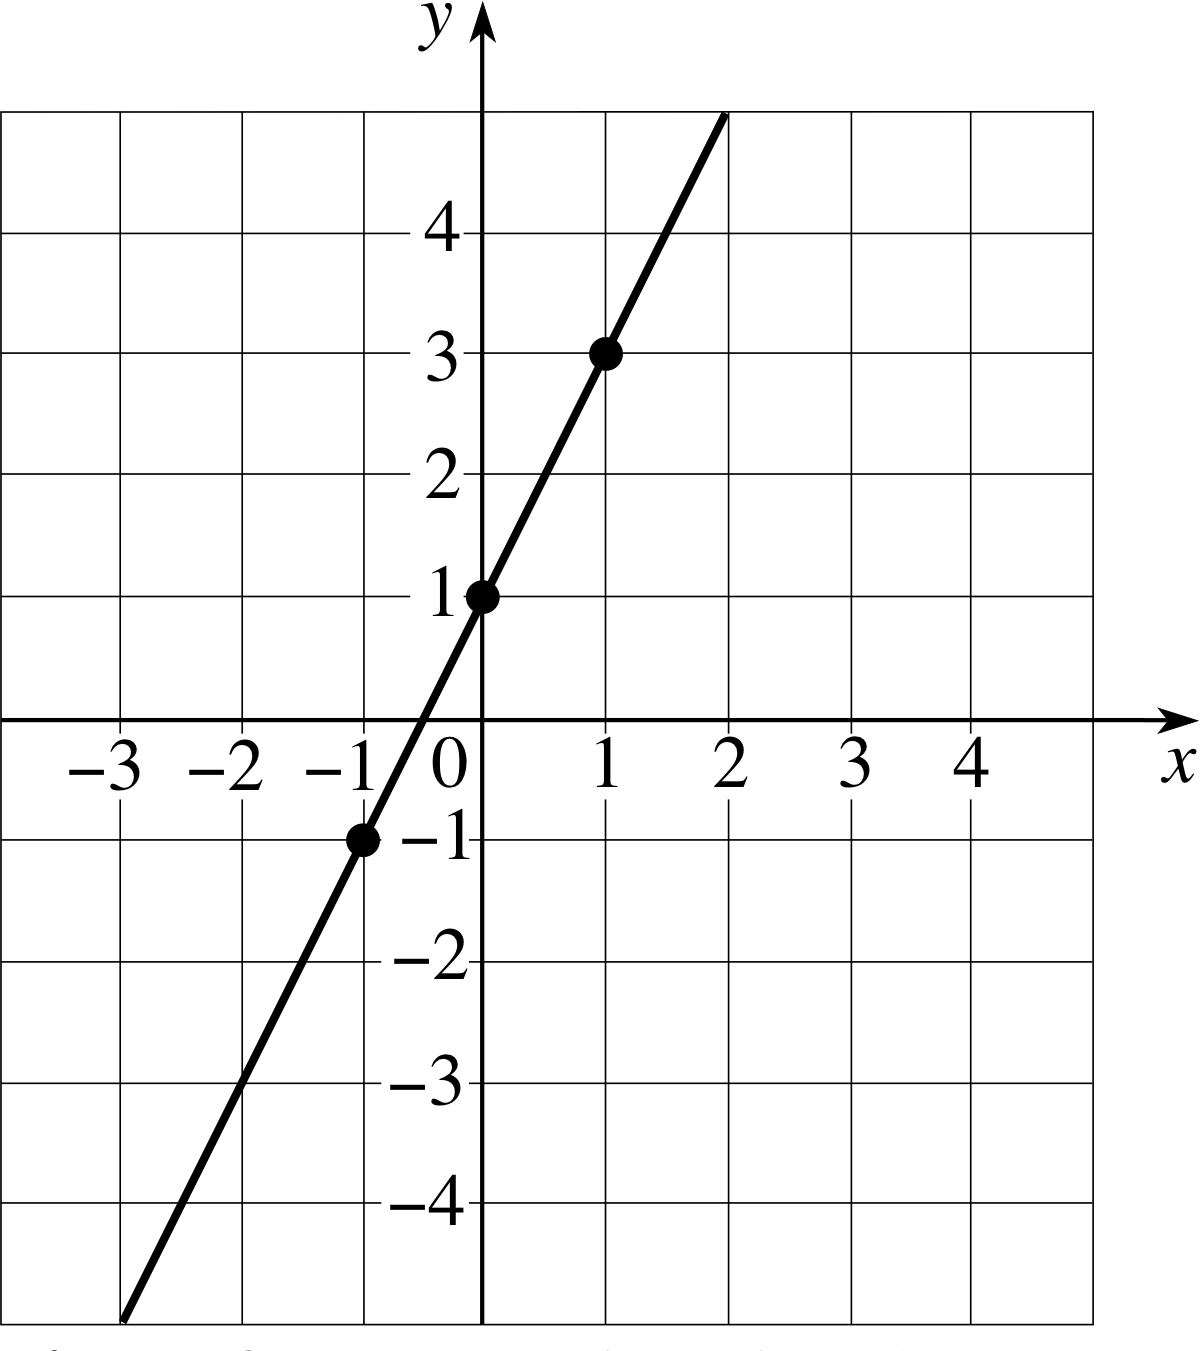 worksheet Graphing Linear Functions pplato flap math 1 3 functions and graphs 4 linear graphs